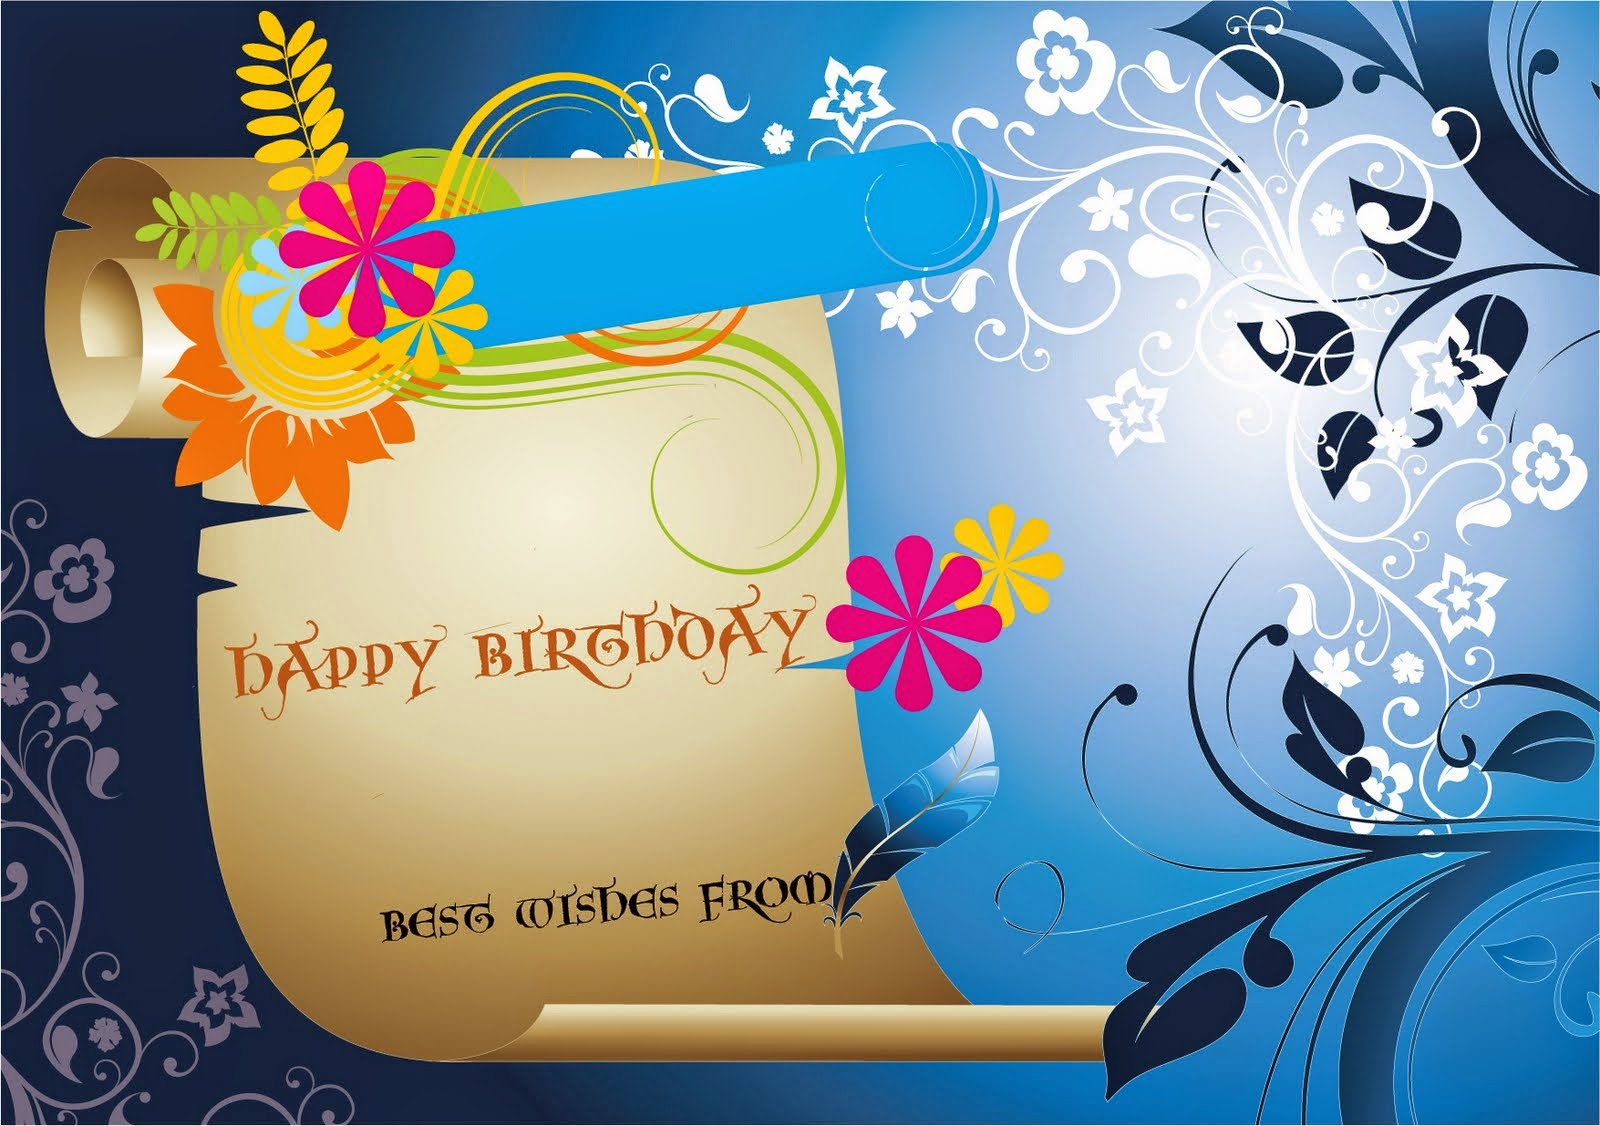 Birthday Greeting Cards Online gangcraftnet – Personalised Birthday Cards Online Free